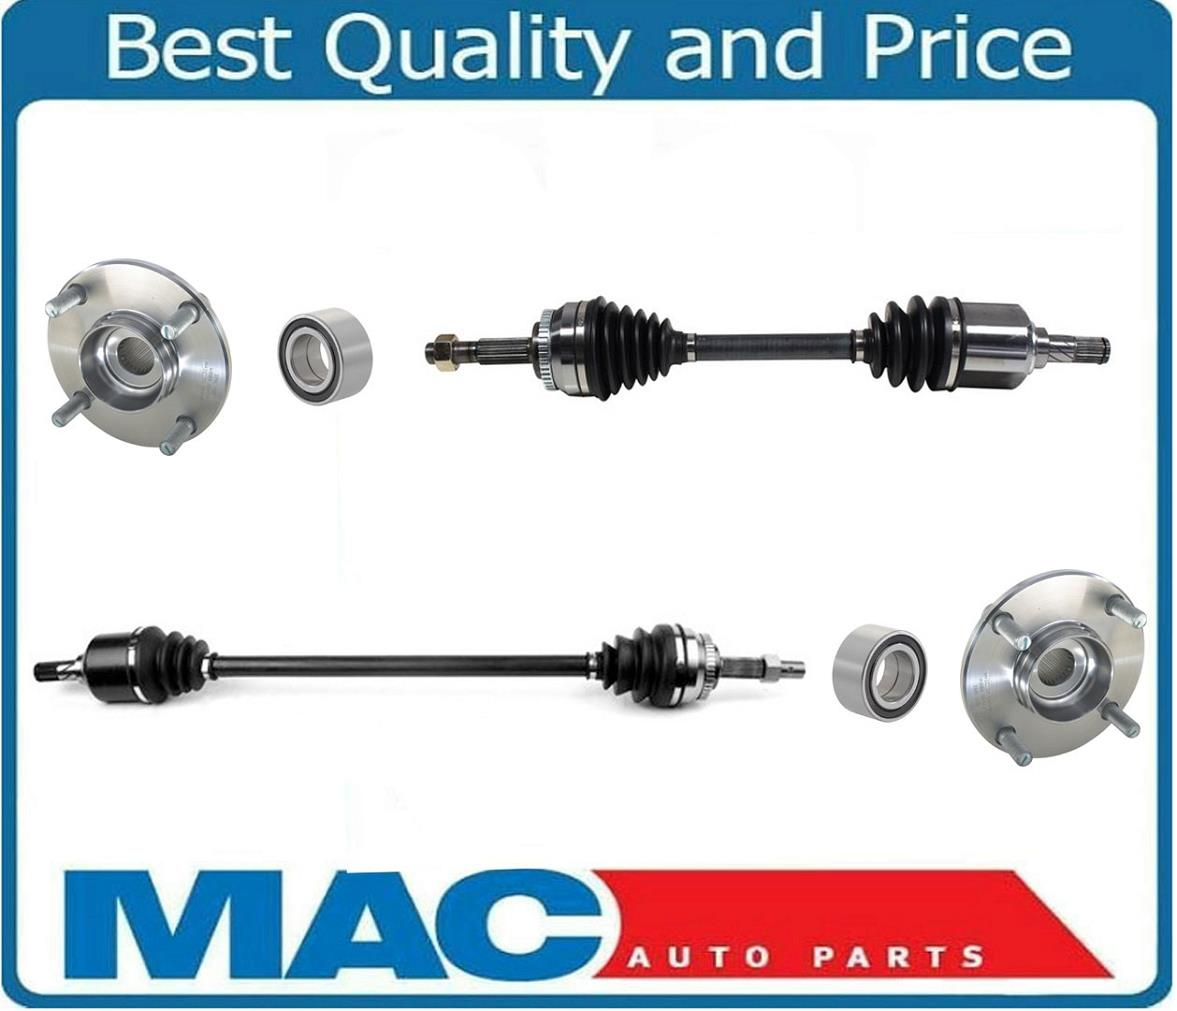 Frt CV Drive Axle Shafts 2 New For 01-04 Escape 2.0L 4 Cly Manual Transmission